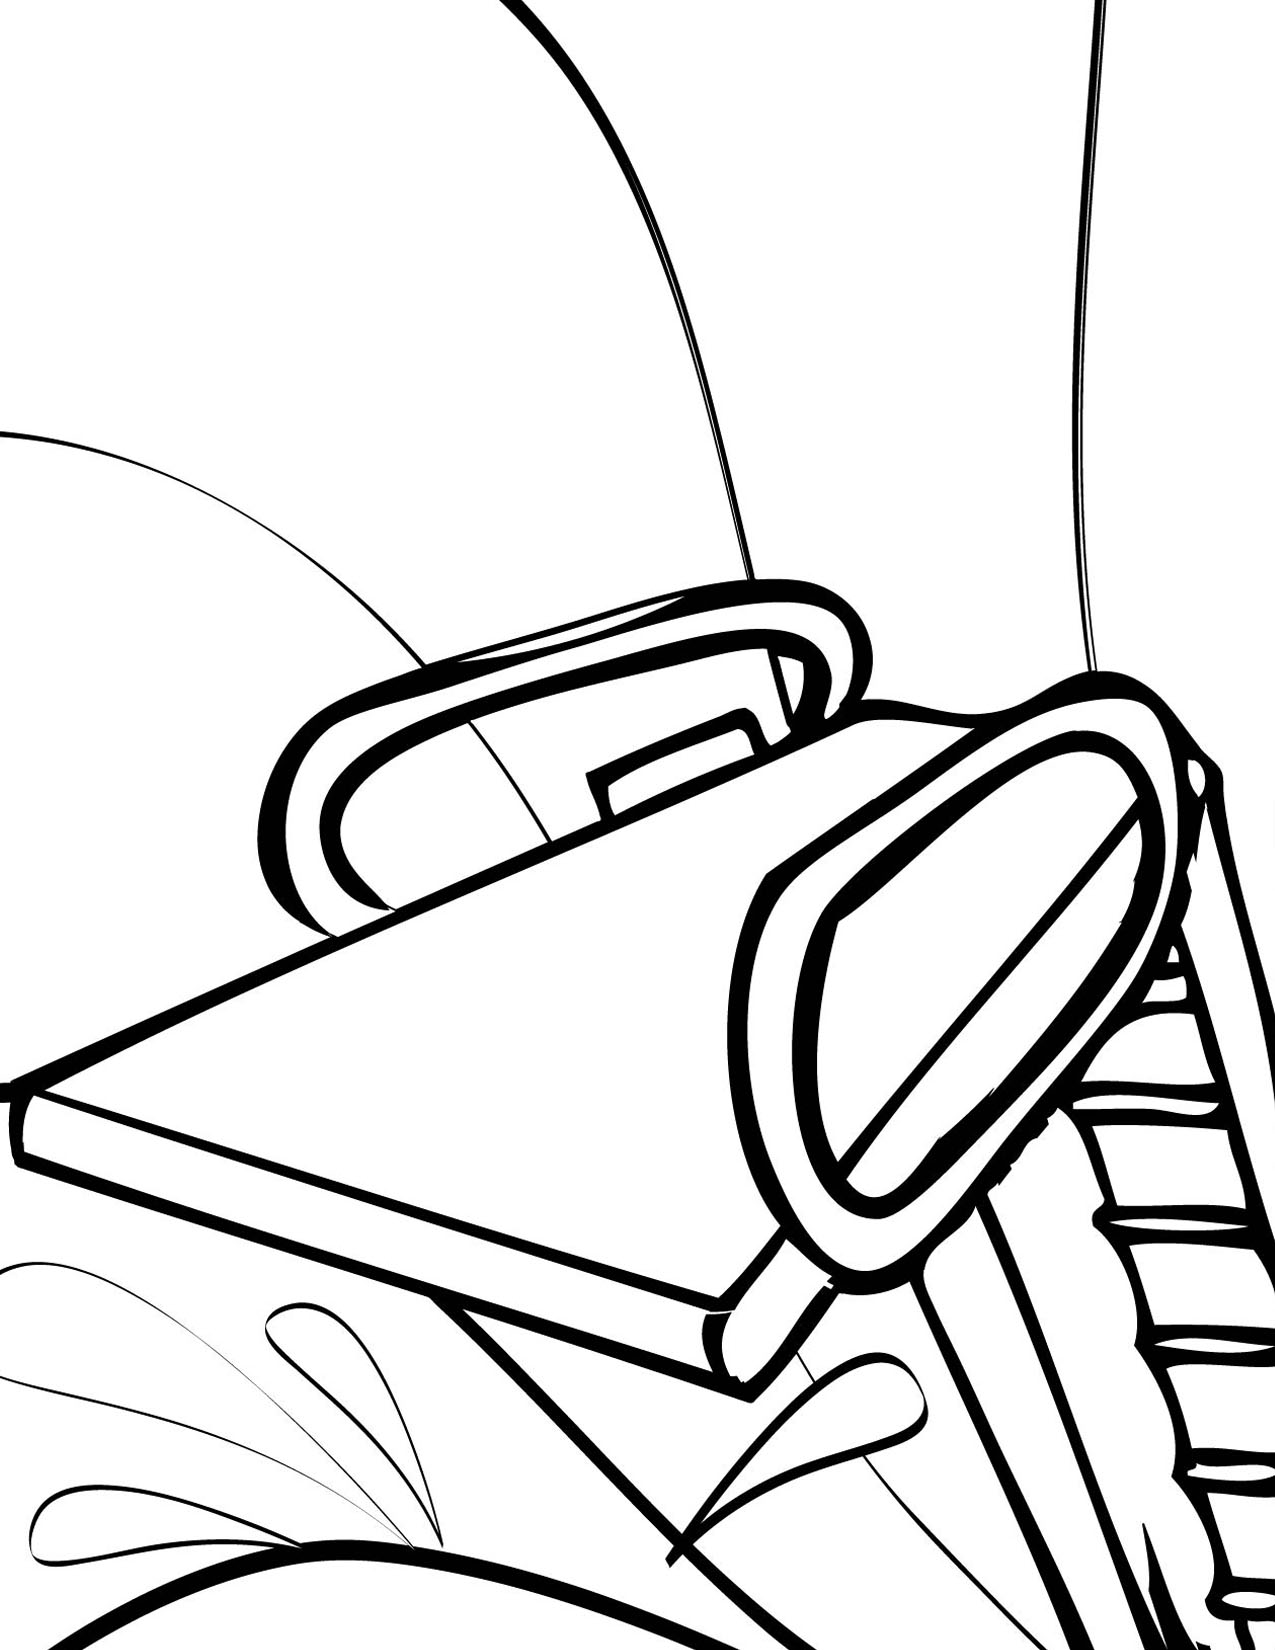 Diving Board Coloring Page - Handipoints